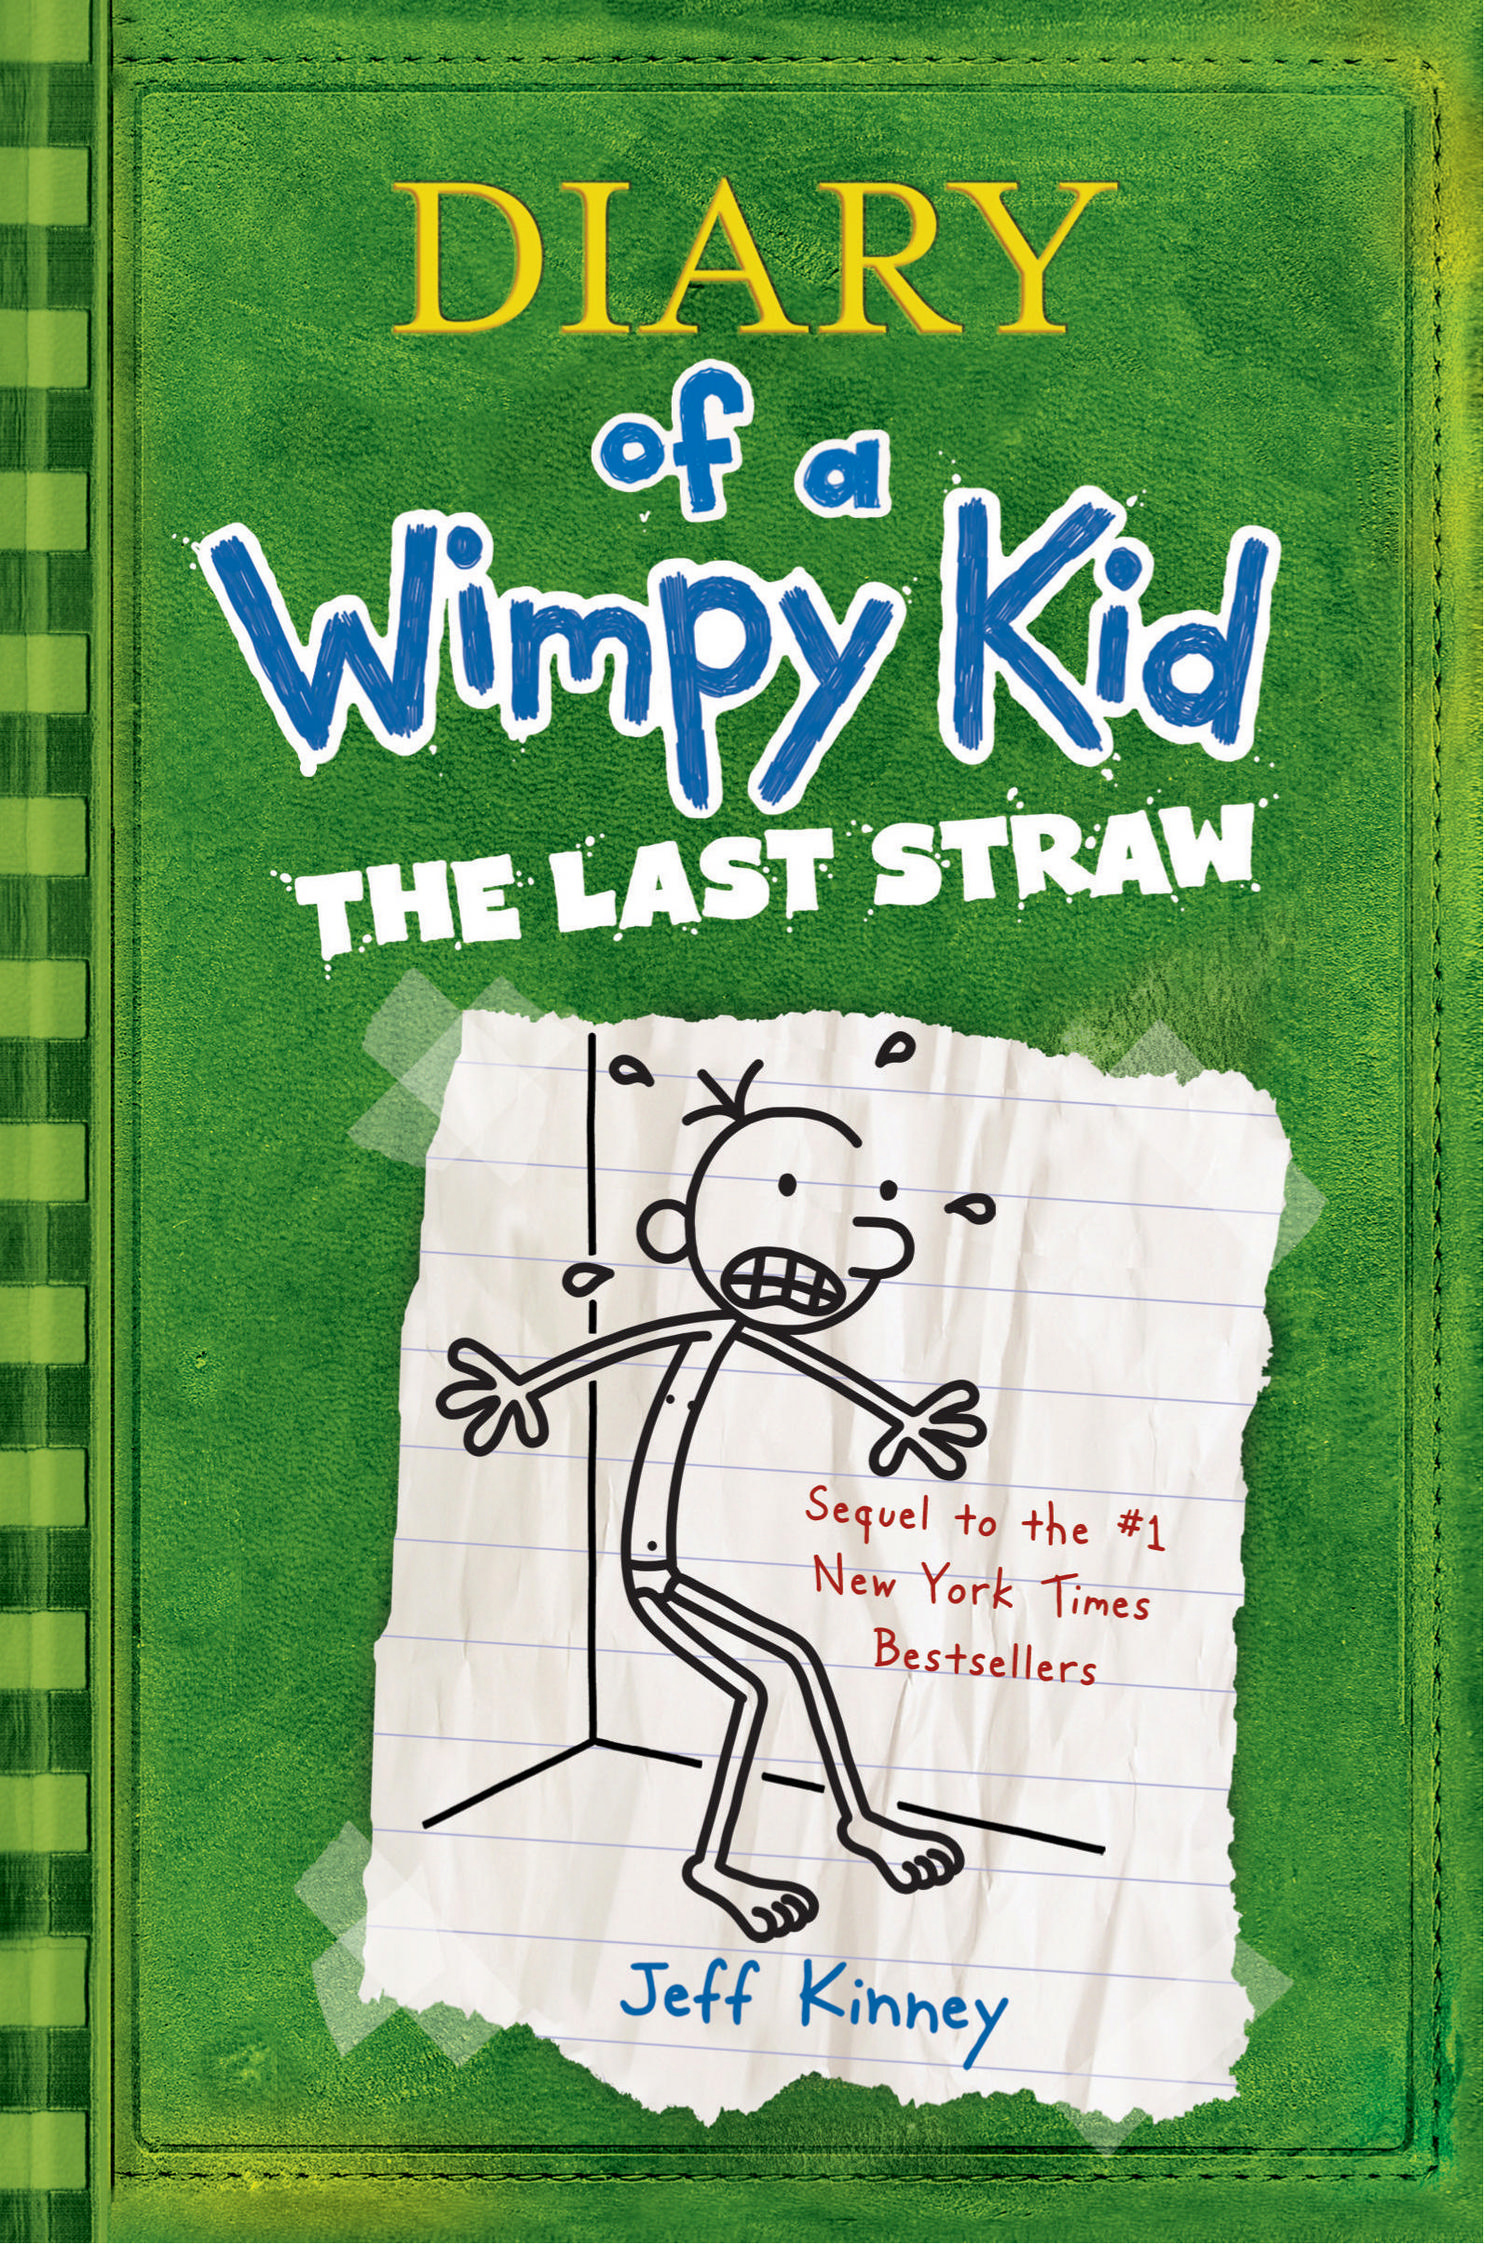 Diary Of A Wimpy Kid By Jeff Kinney Reading Level